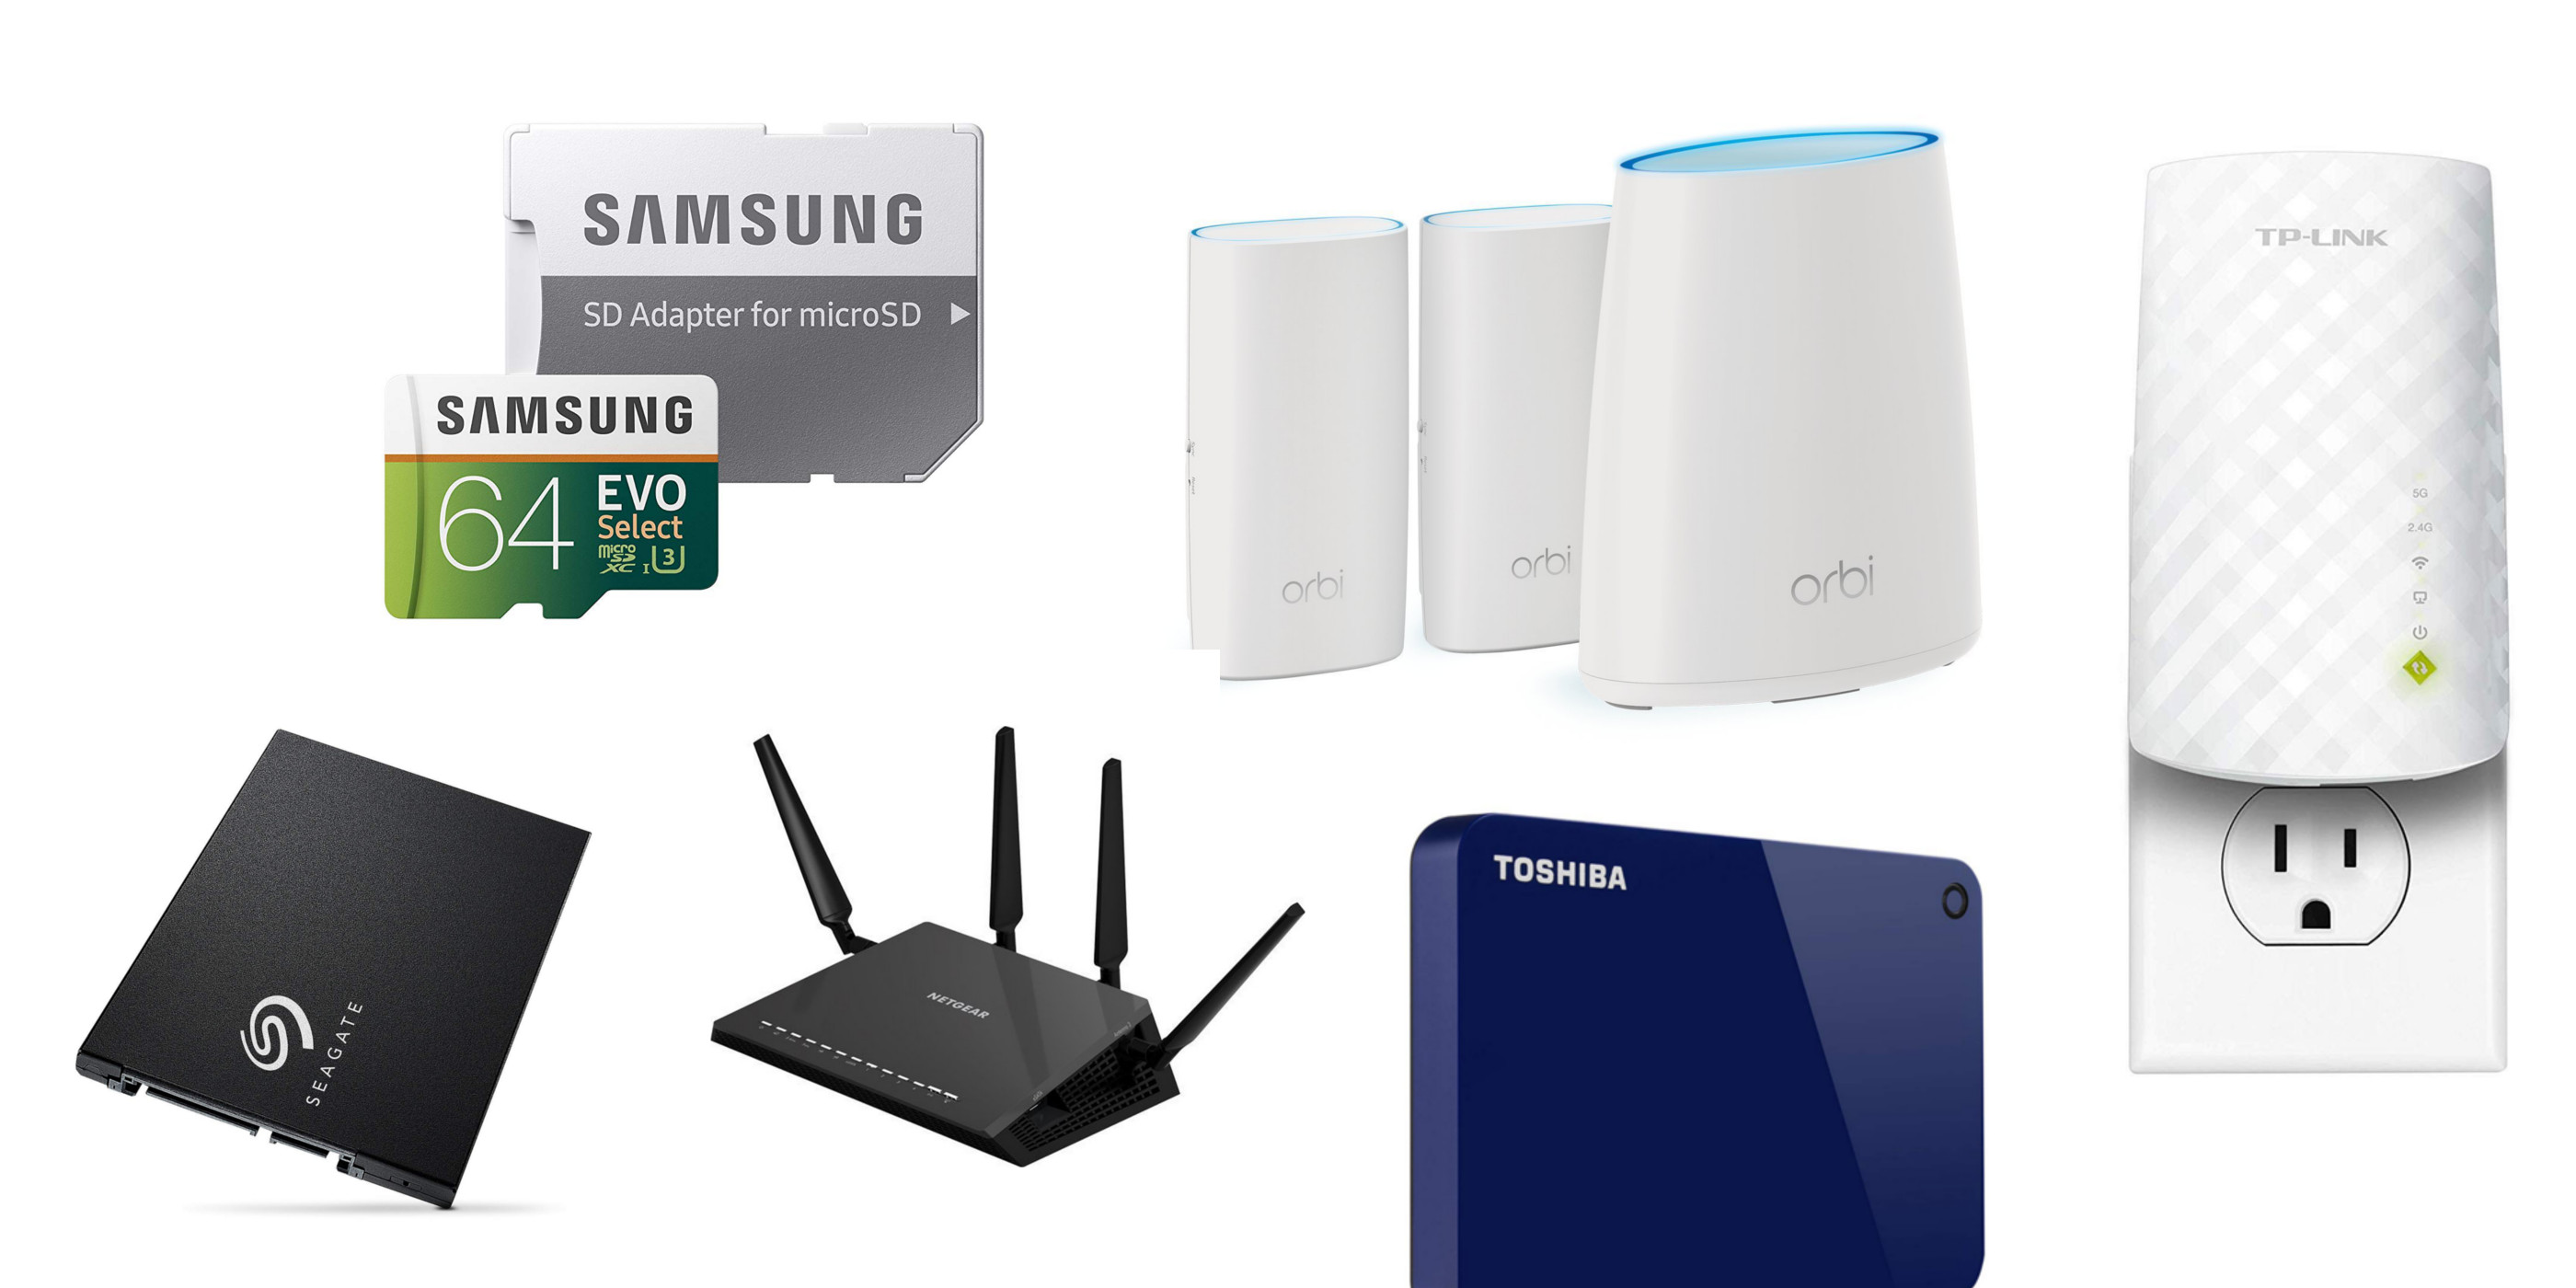 Amazon 1-day storage/networking sale from $8: routers, desktop drives, SSD, mesh Wi-Fi, more